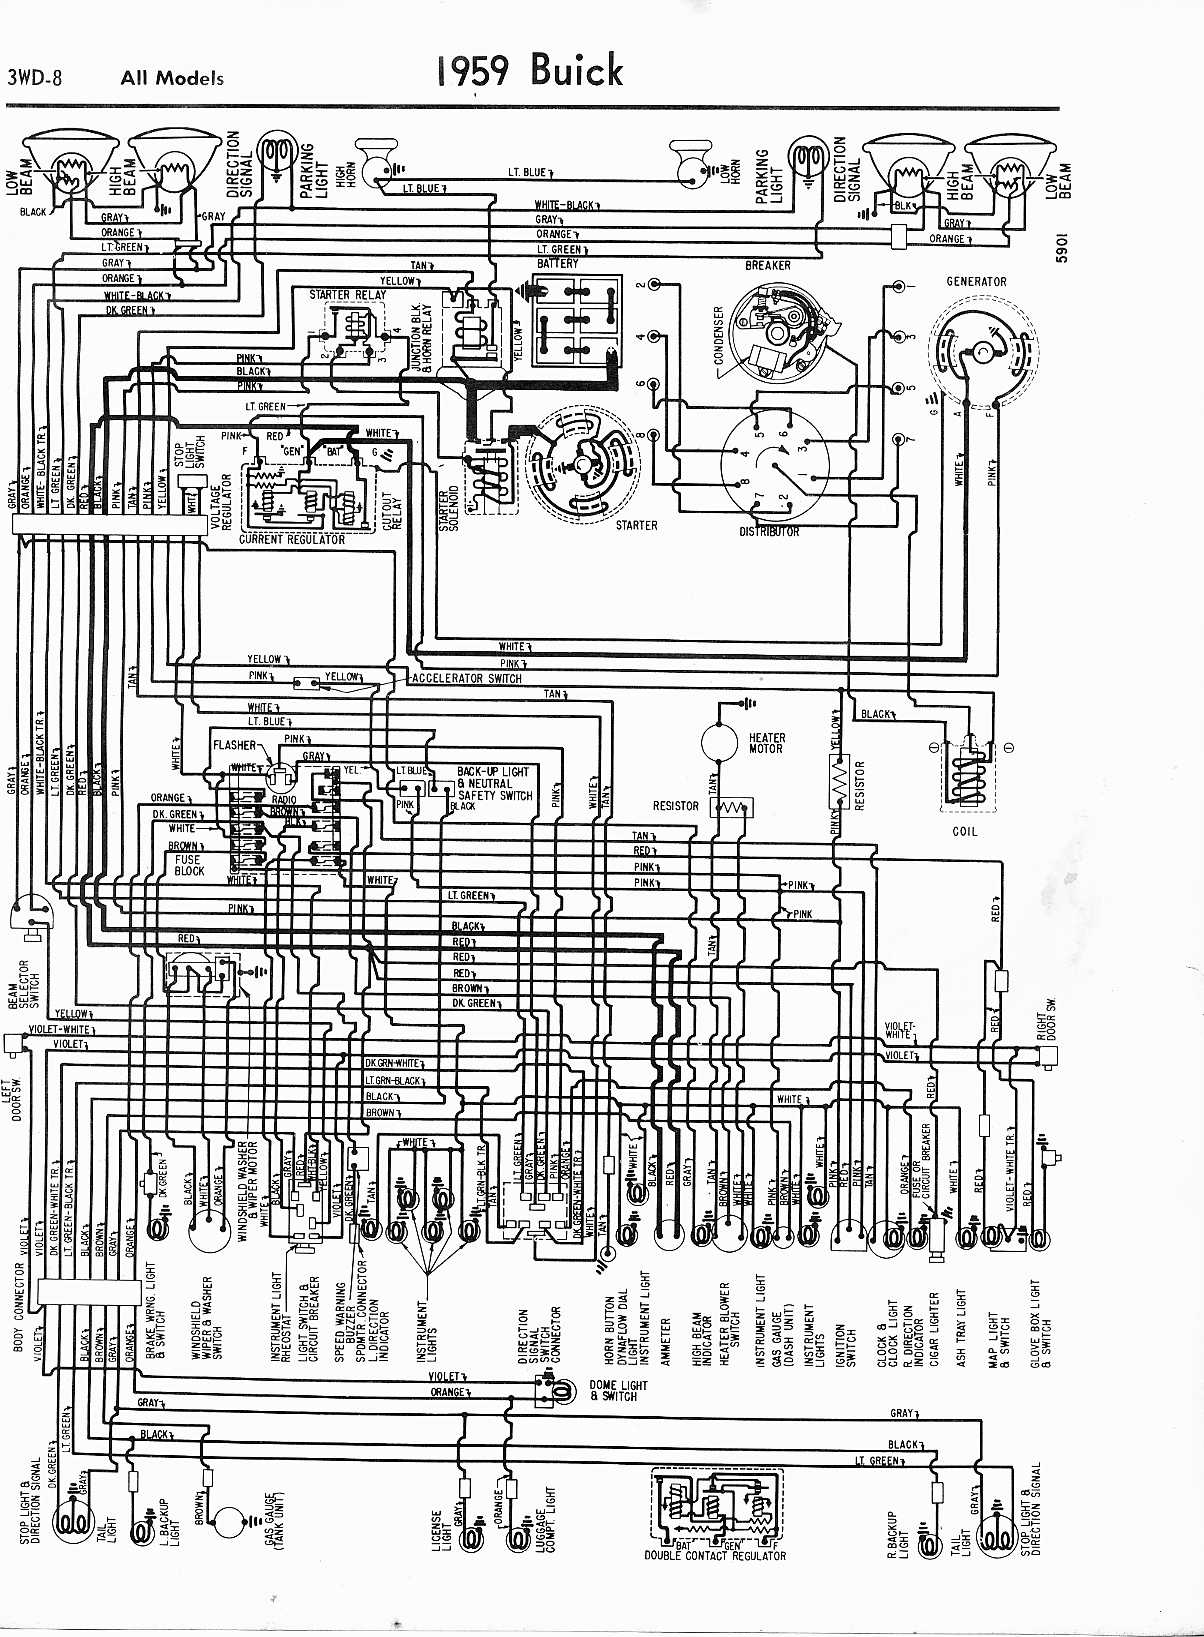 95 buick regal radio wiring diagram